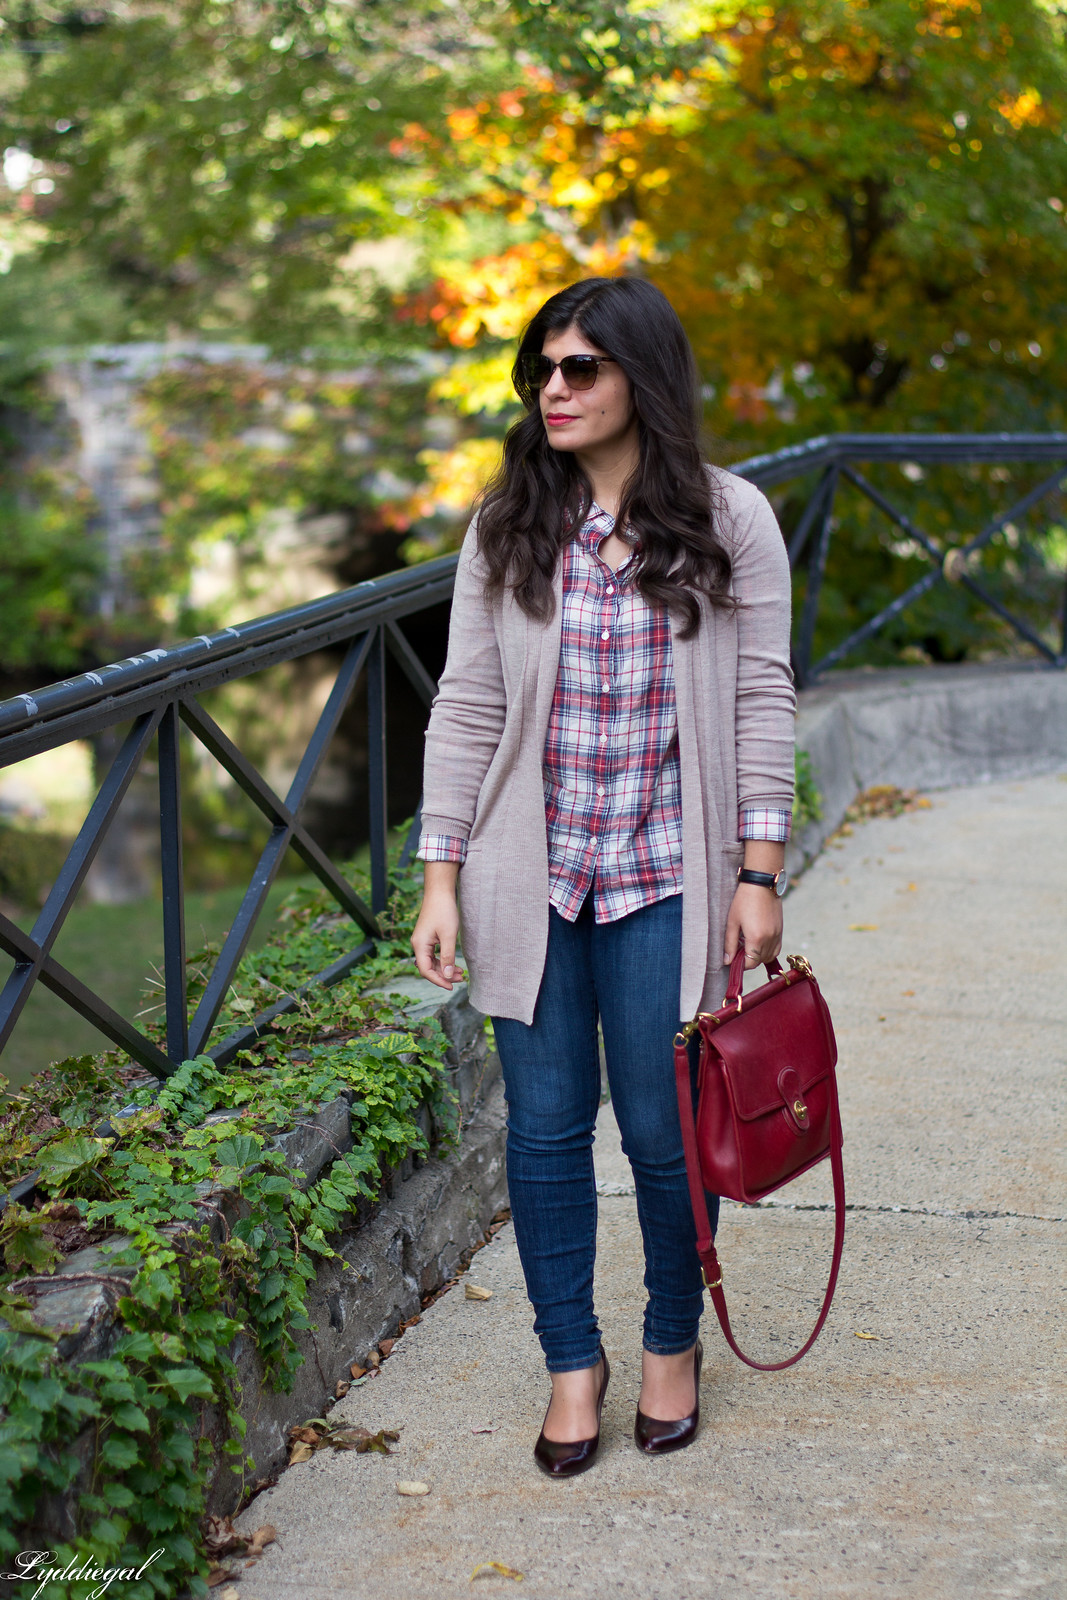 plaid shirt, camel cardigan, jeans, red coach willis bag.jpg